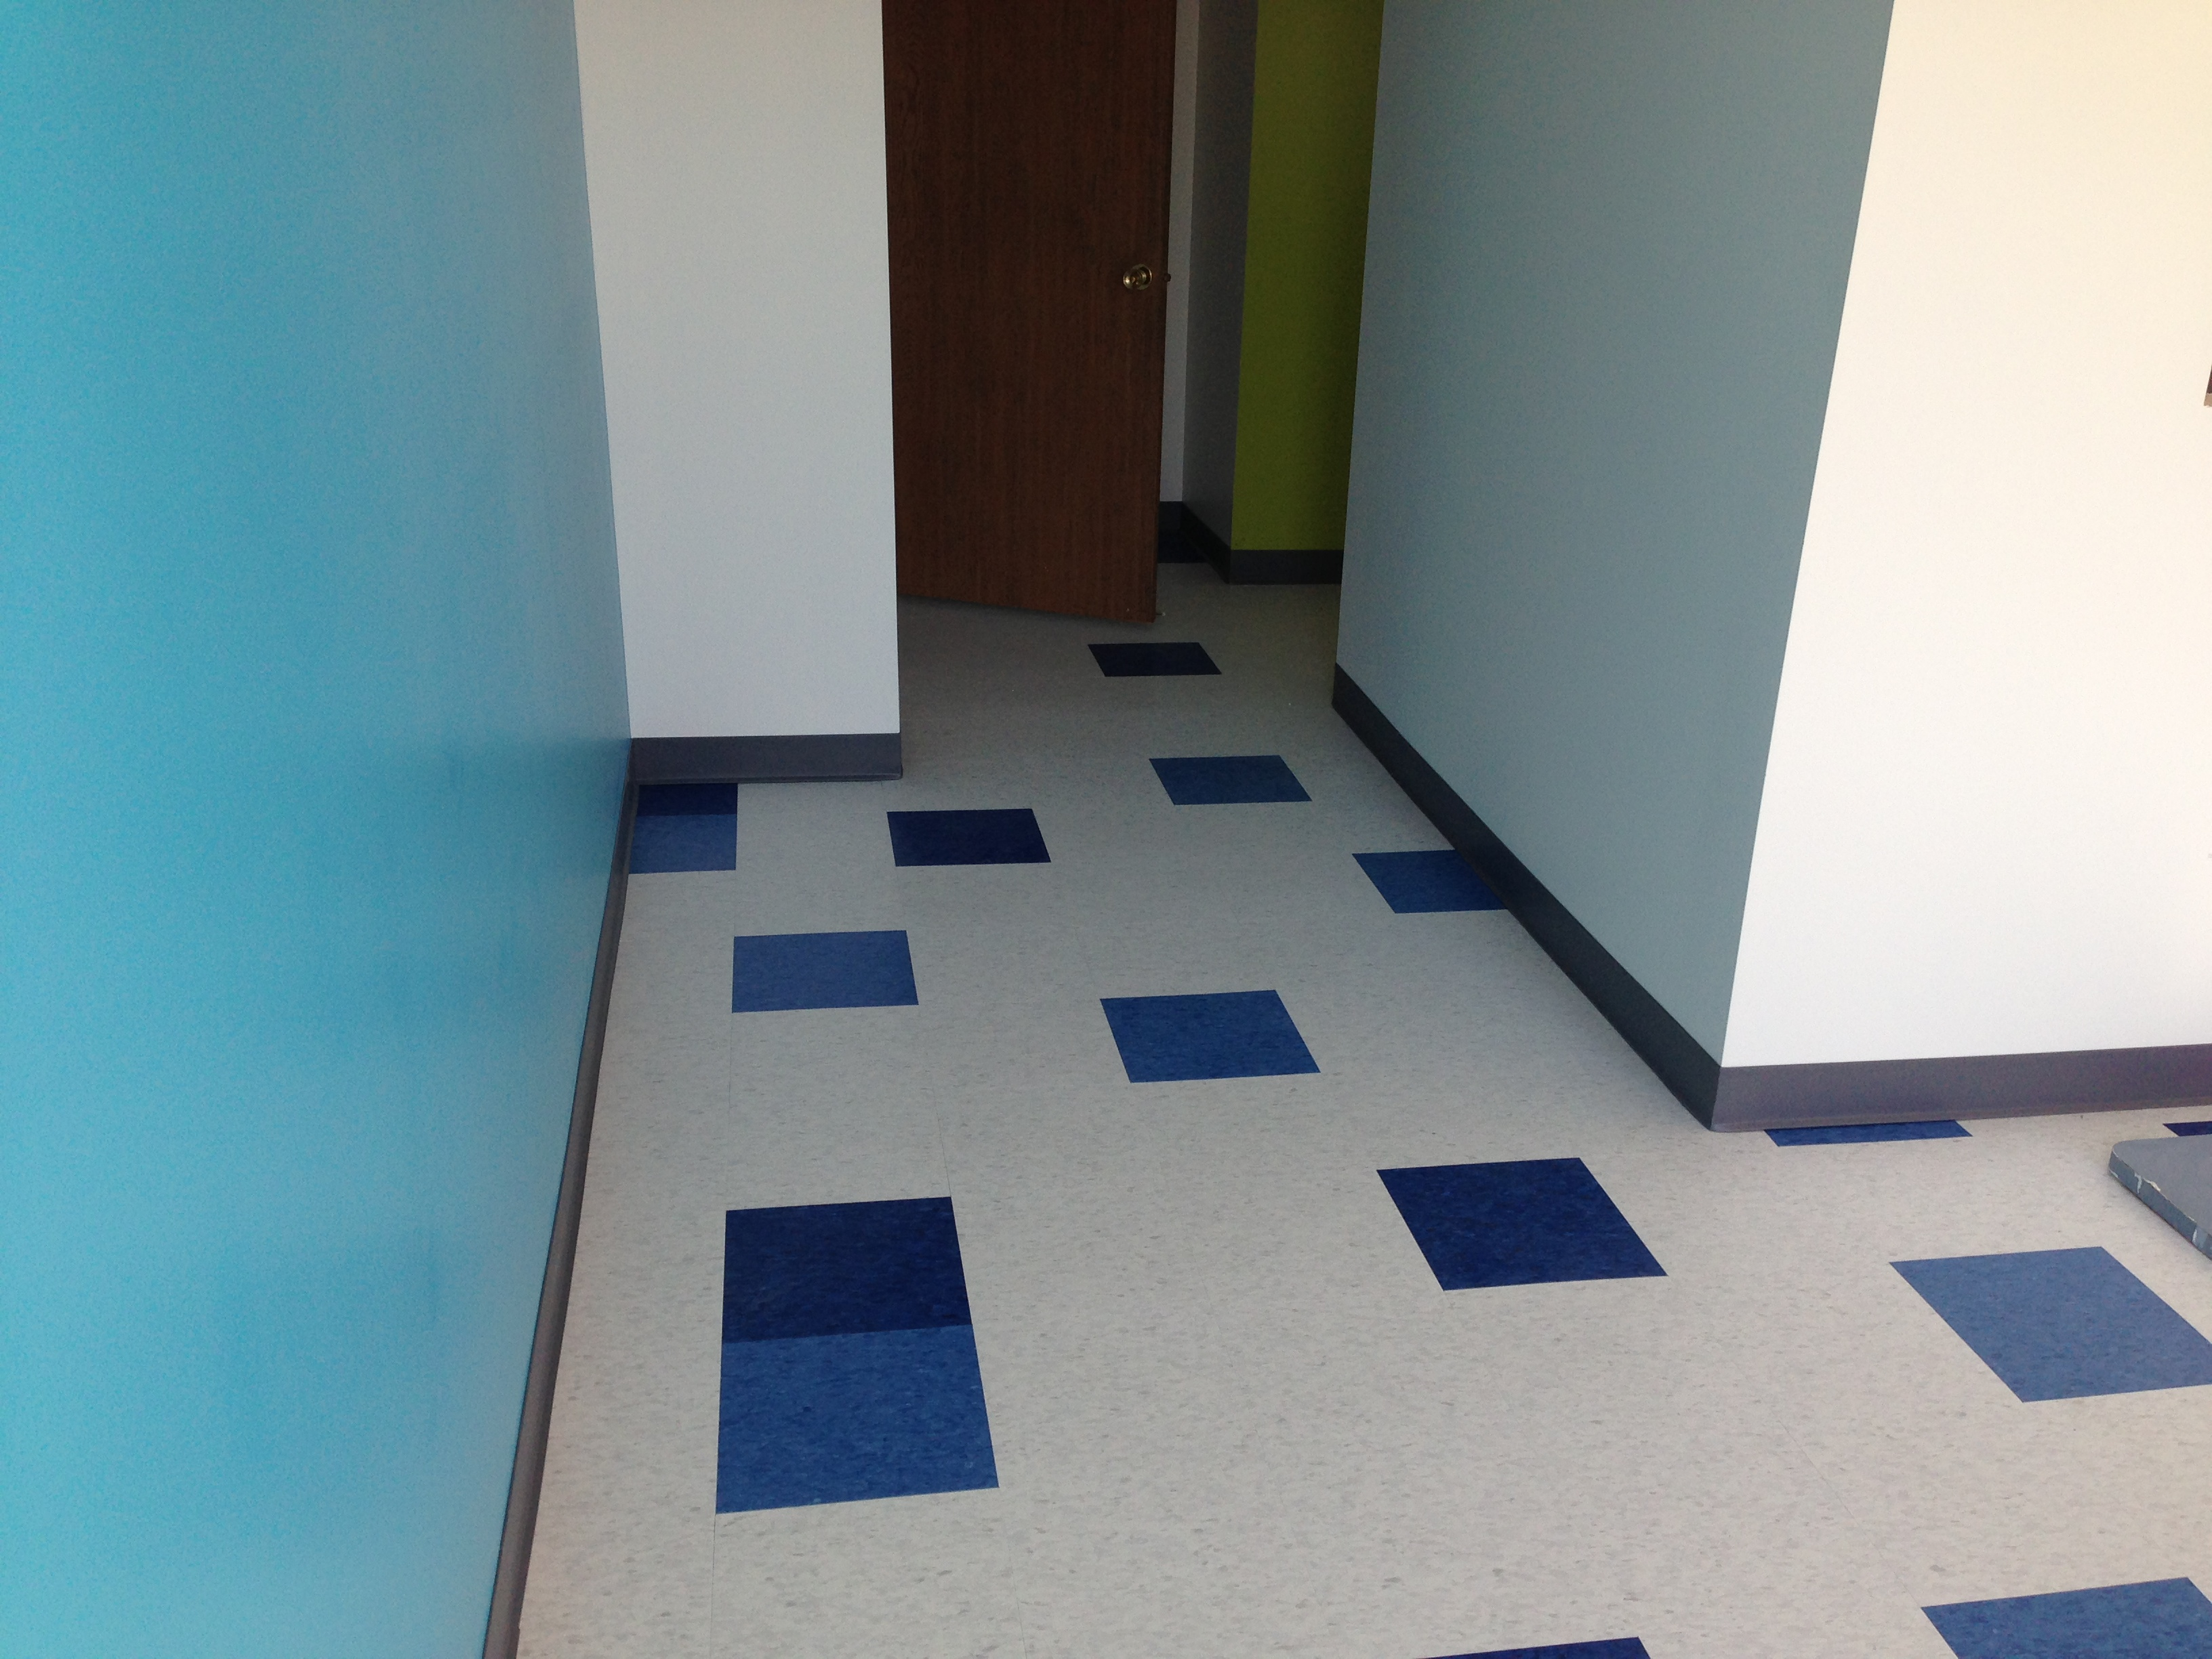 Vct Flooring Five Things To Know About Vinyl Composite Tile